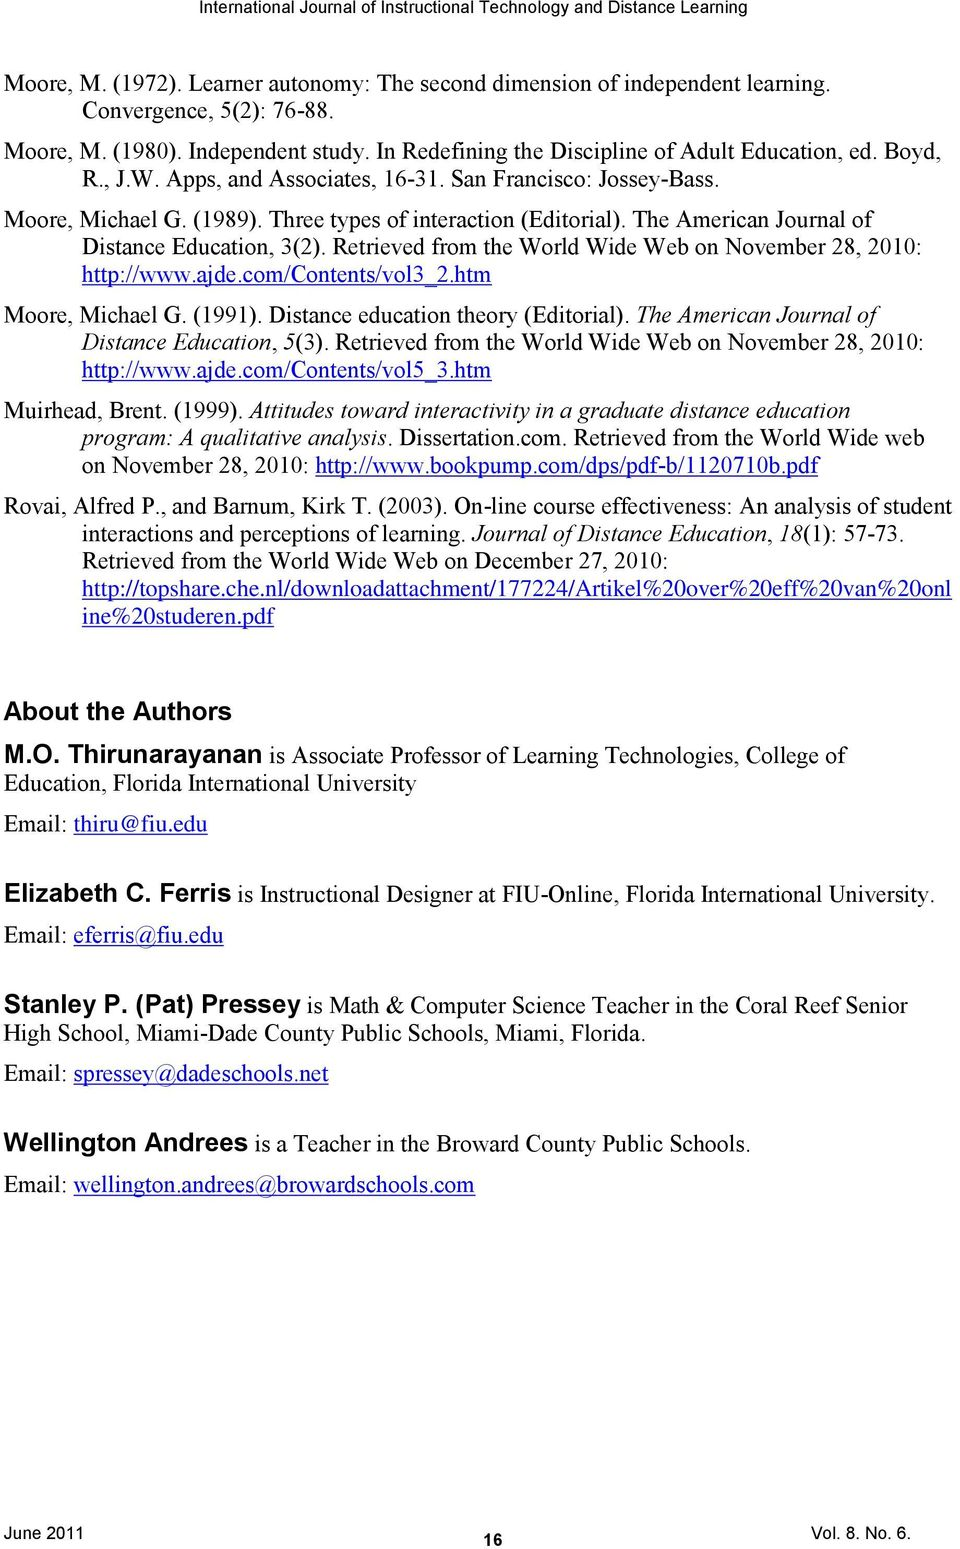 Retrieved from the World Wide Web on November 28, 2010: http://www.ajde.com/contents/vol3_2.htm Moore, Michael G. (1991). Distance education theory (Editorial).